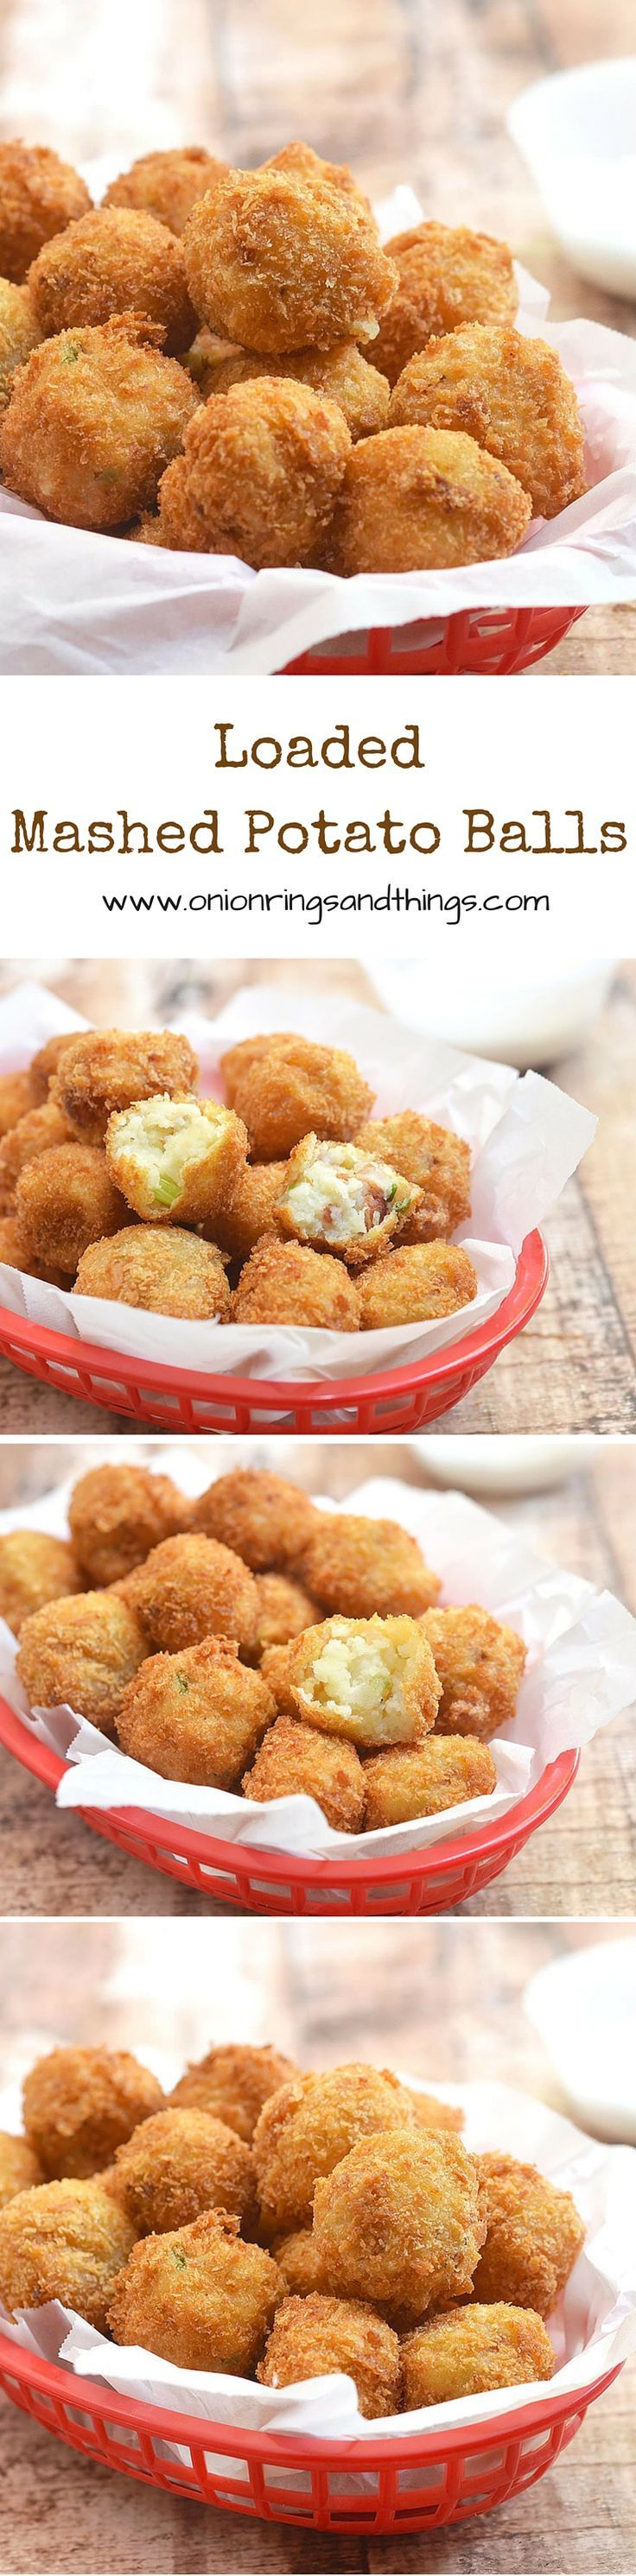 With fluffy potato centers and golden-crisp bread coating, these loaded mashed potato balls are a delicious party appetizer or any time of the day snack the whole crowd will love.